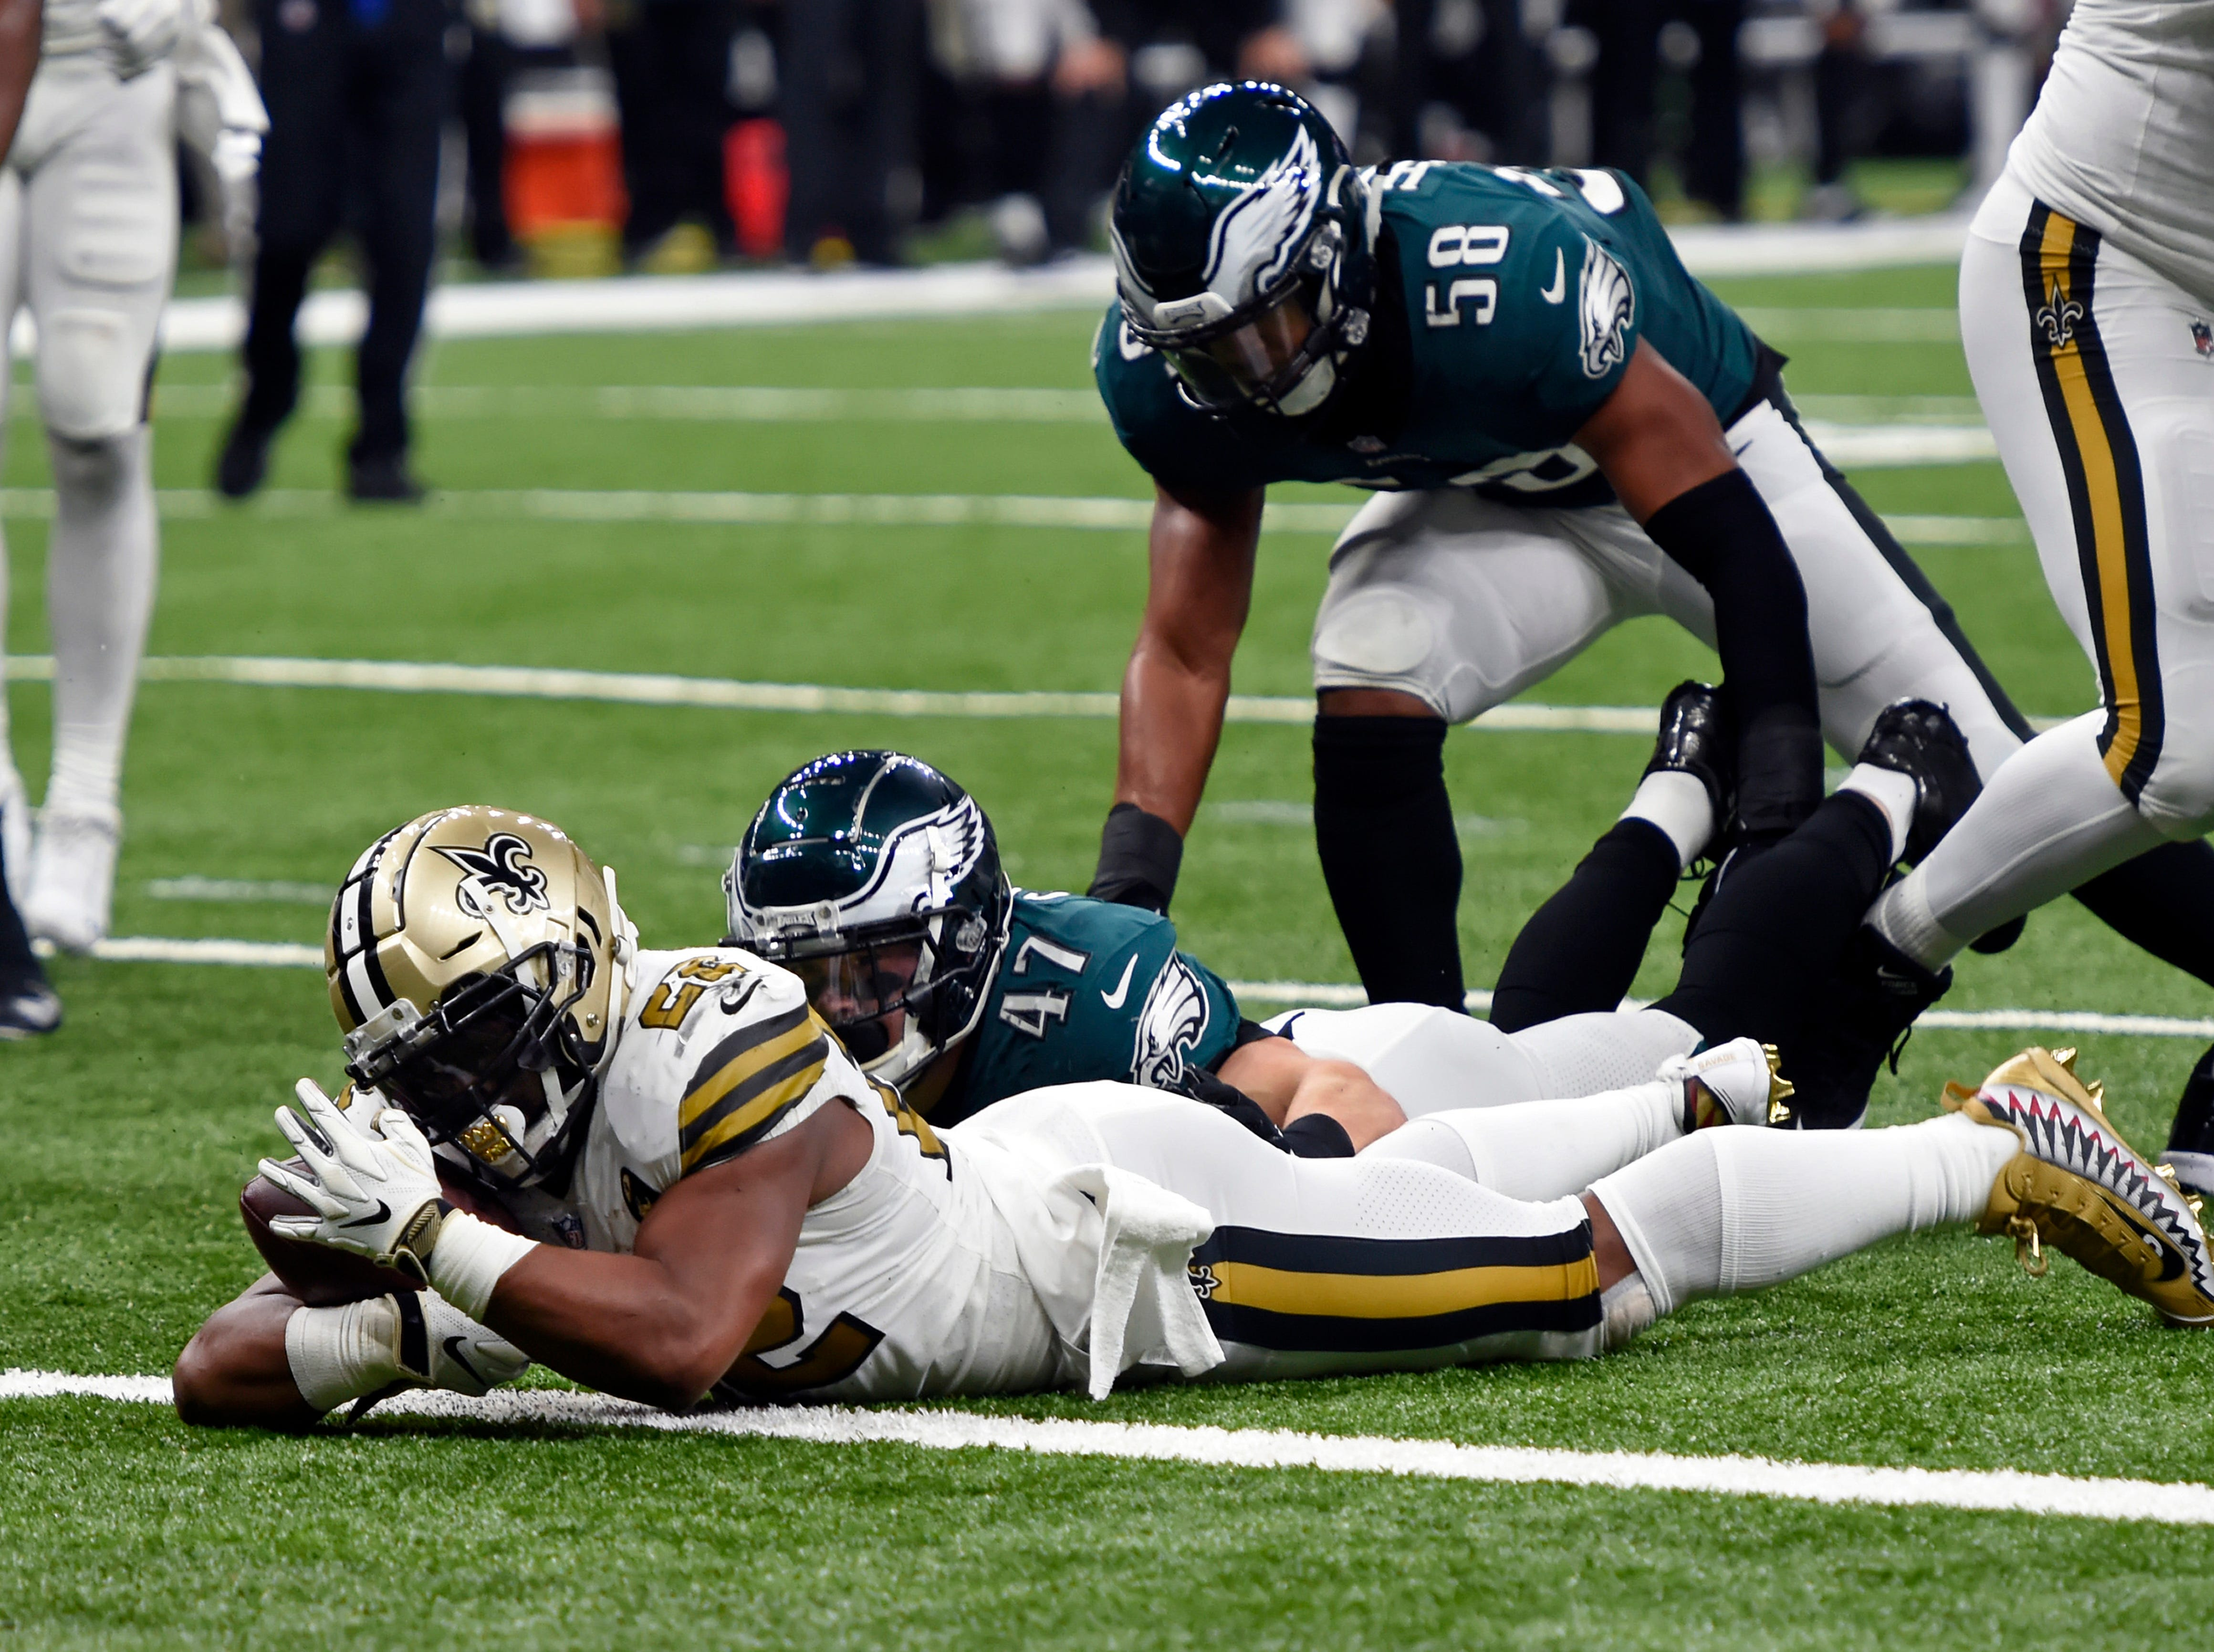 Frank: Are the Philadelphia Eagles quitting? Or are they really this bad?